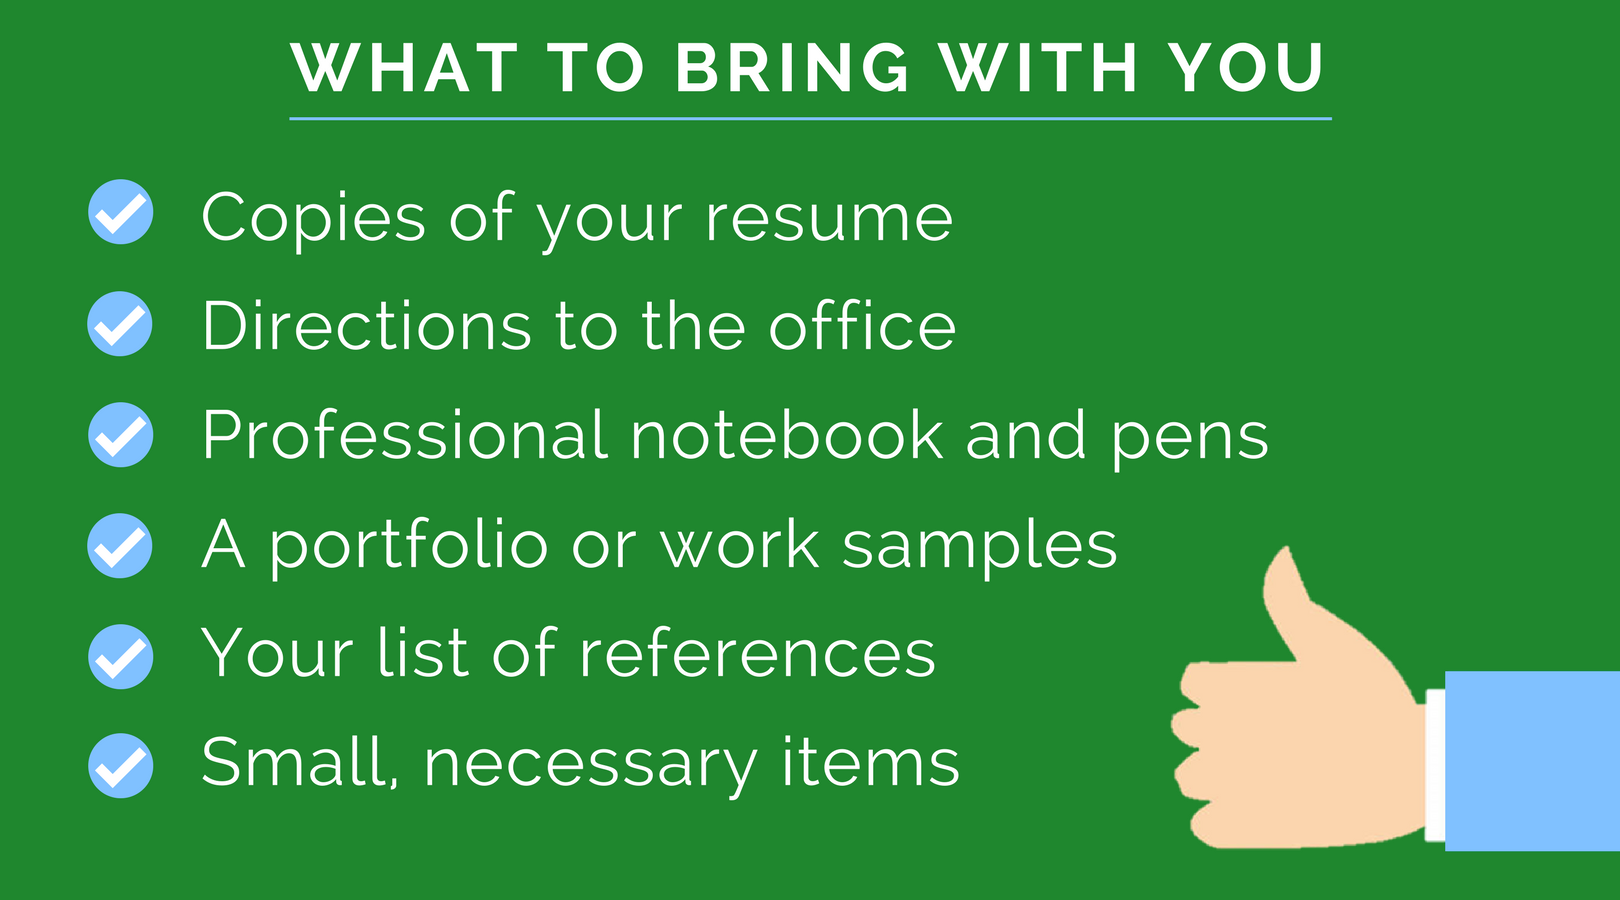 What to Bring With You to Interview-1.png